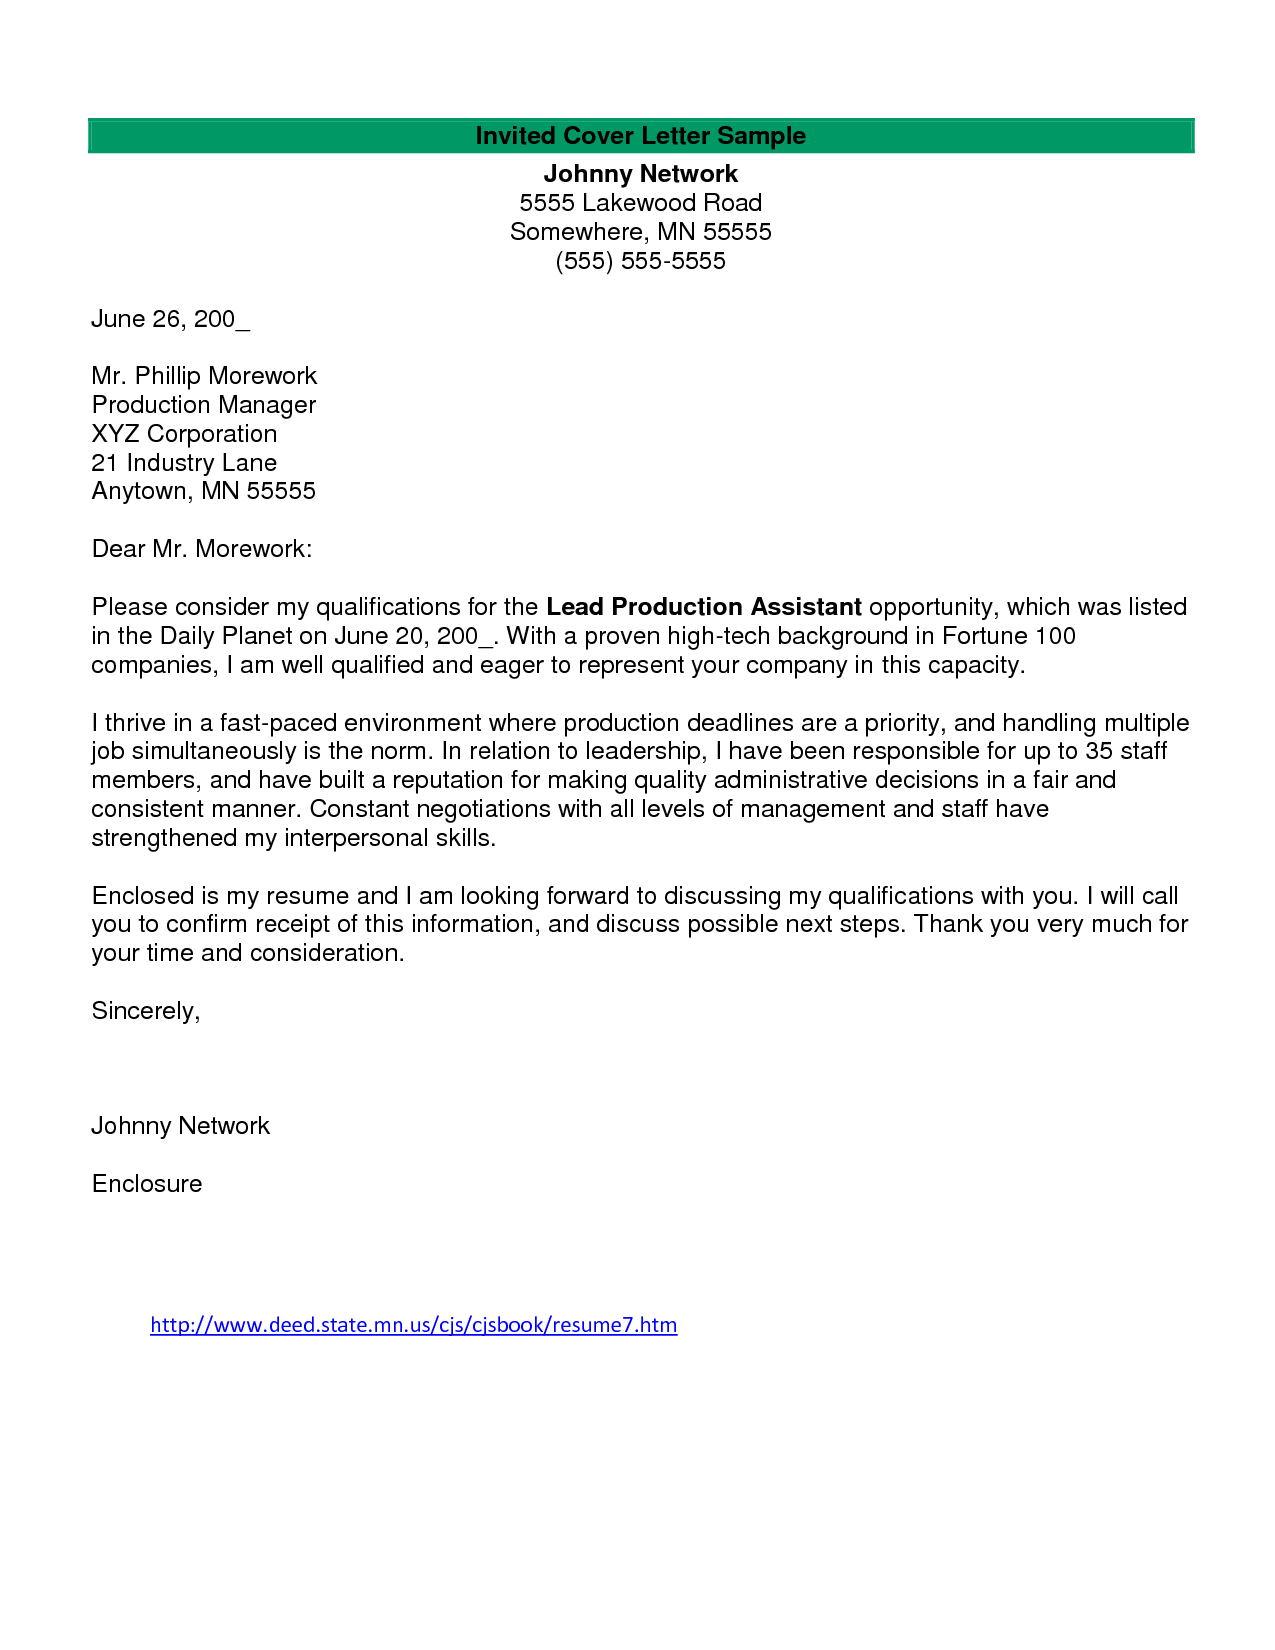 New Registered Nurse Cover Letter Hvac Graduate Example Template 1664014 Png Images Pngio